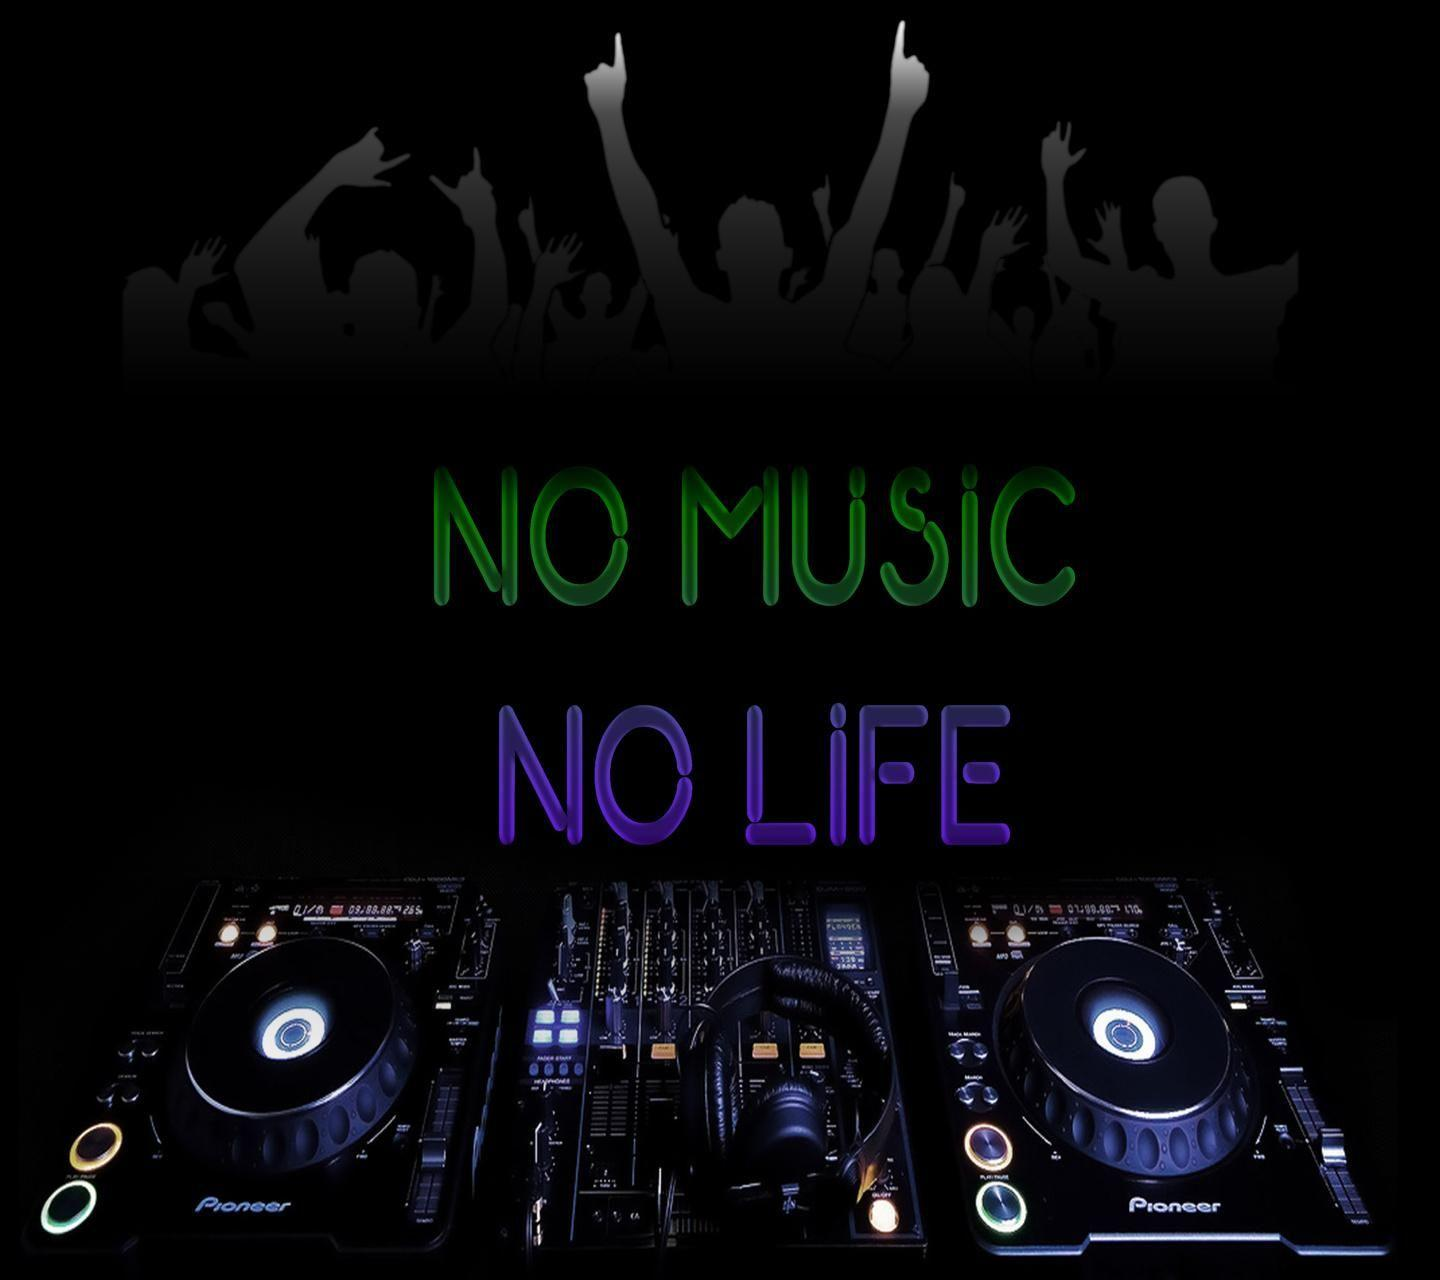 No music no life wallpapers hd wallpaper cave - Music is life hd ...